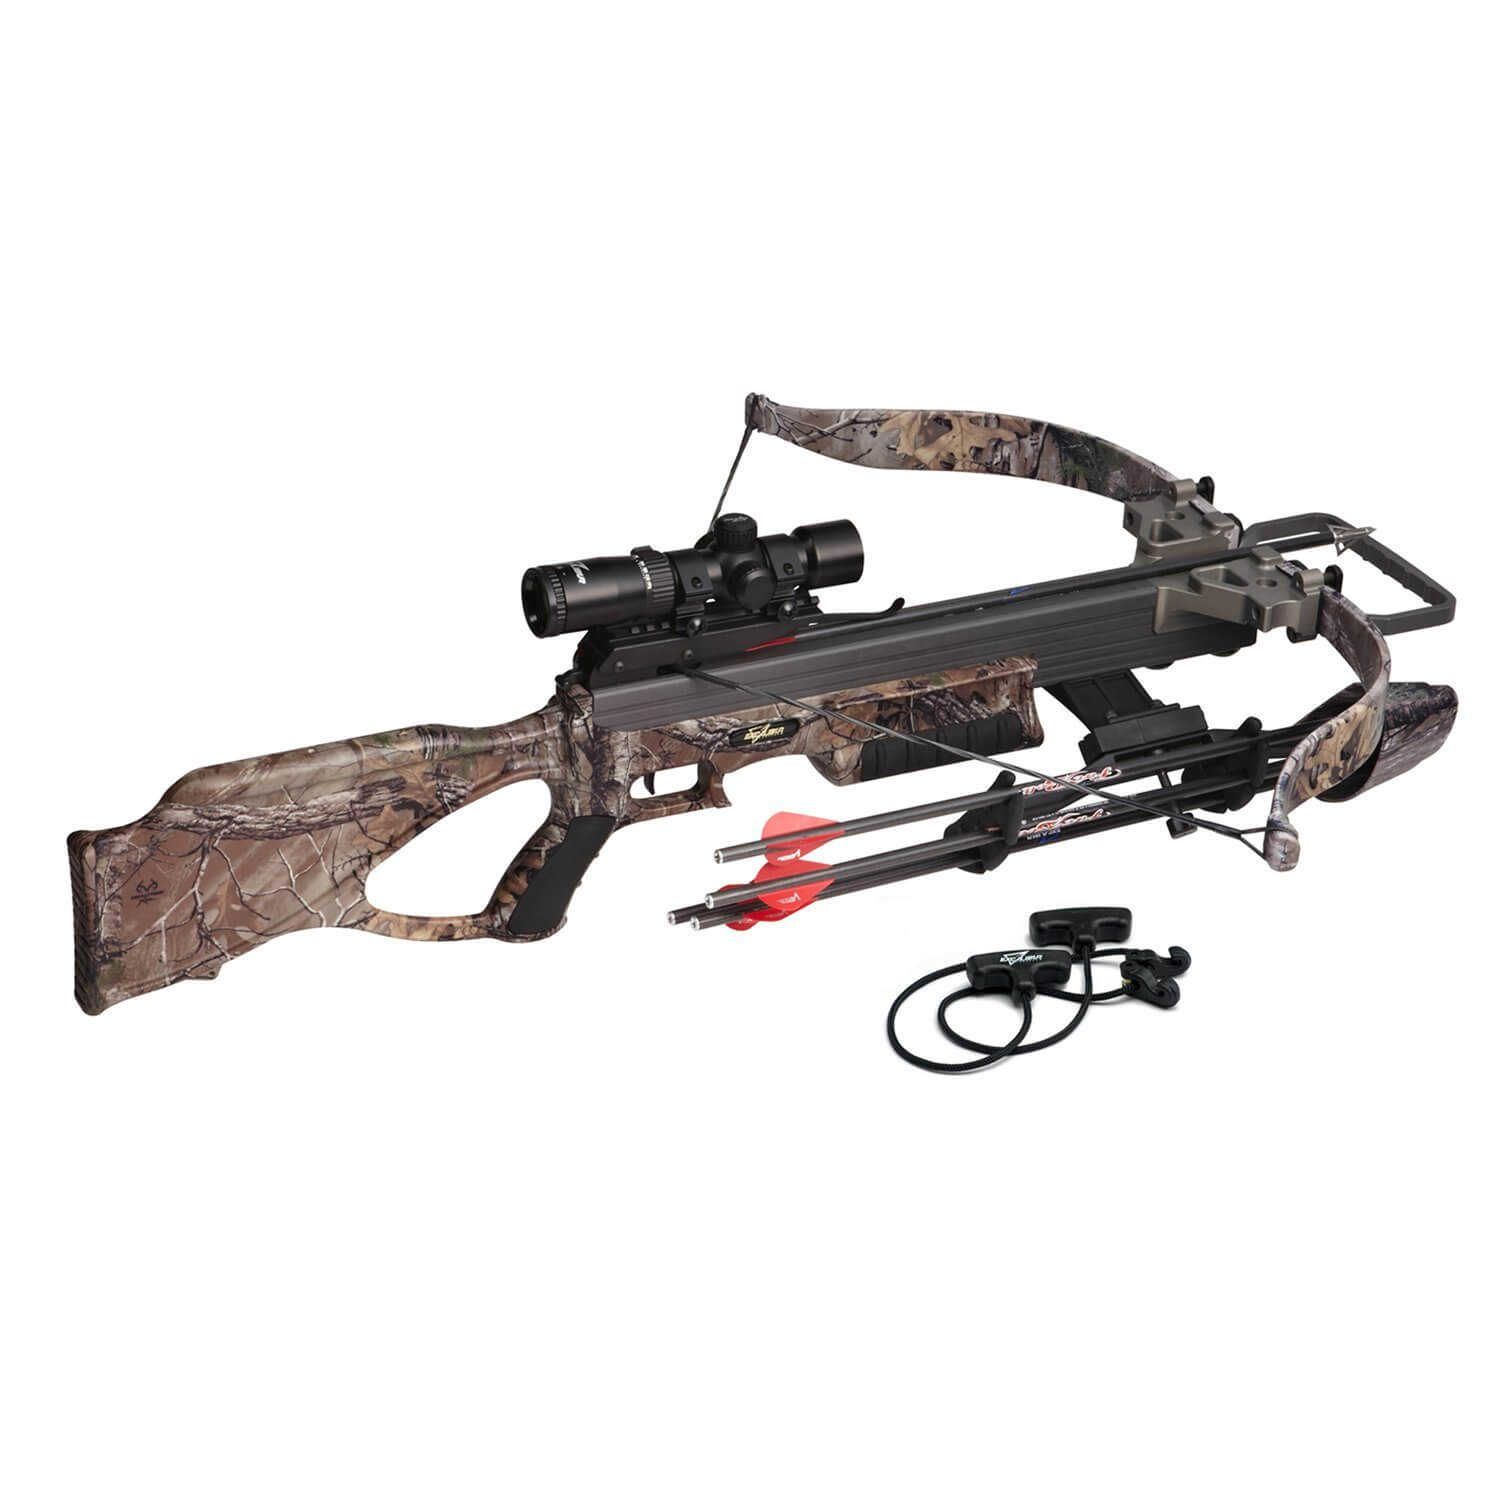 Excalibur Matrix 355 Crossbow Package, Realtree Xtra, 240-Pound